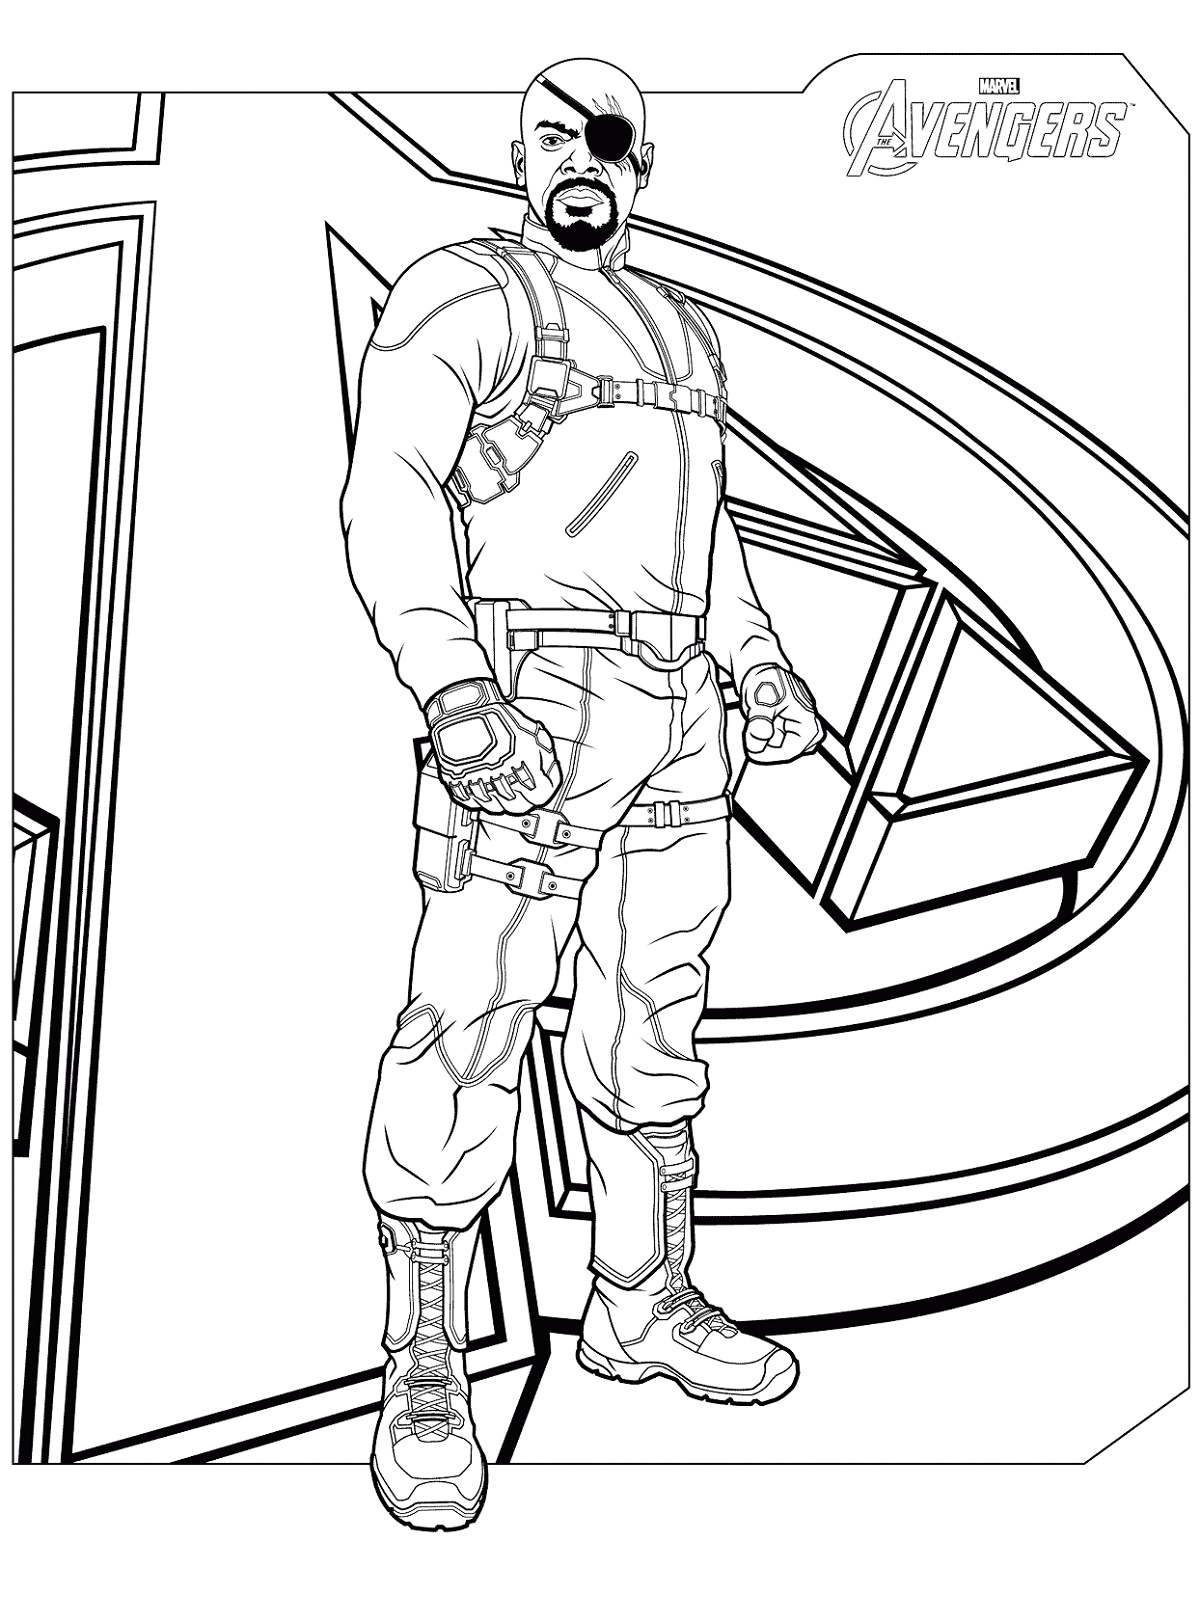 Avengers Coloring Pages Nick Fury